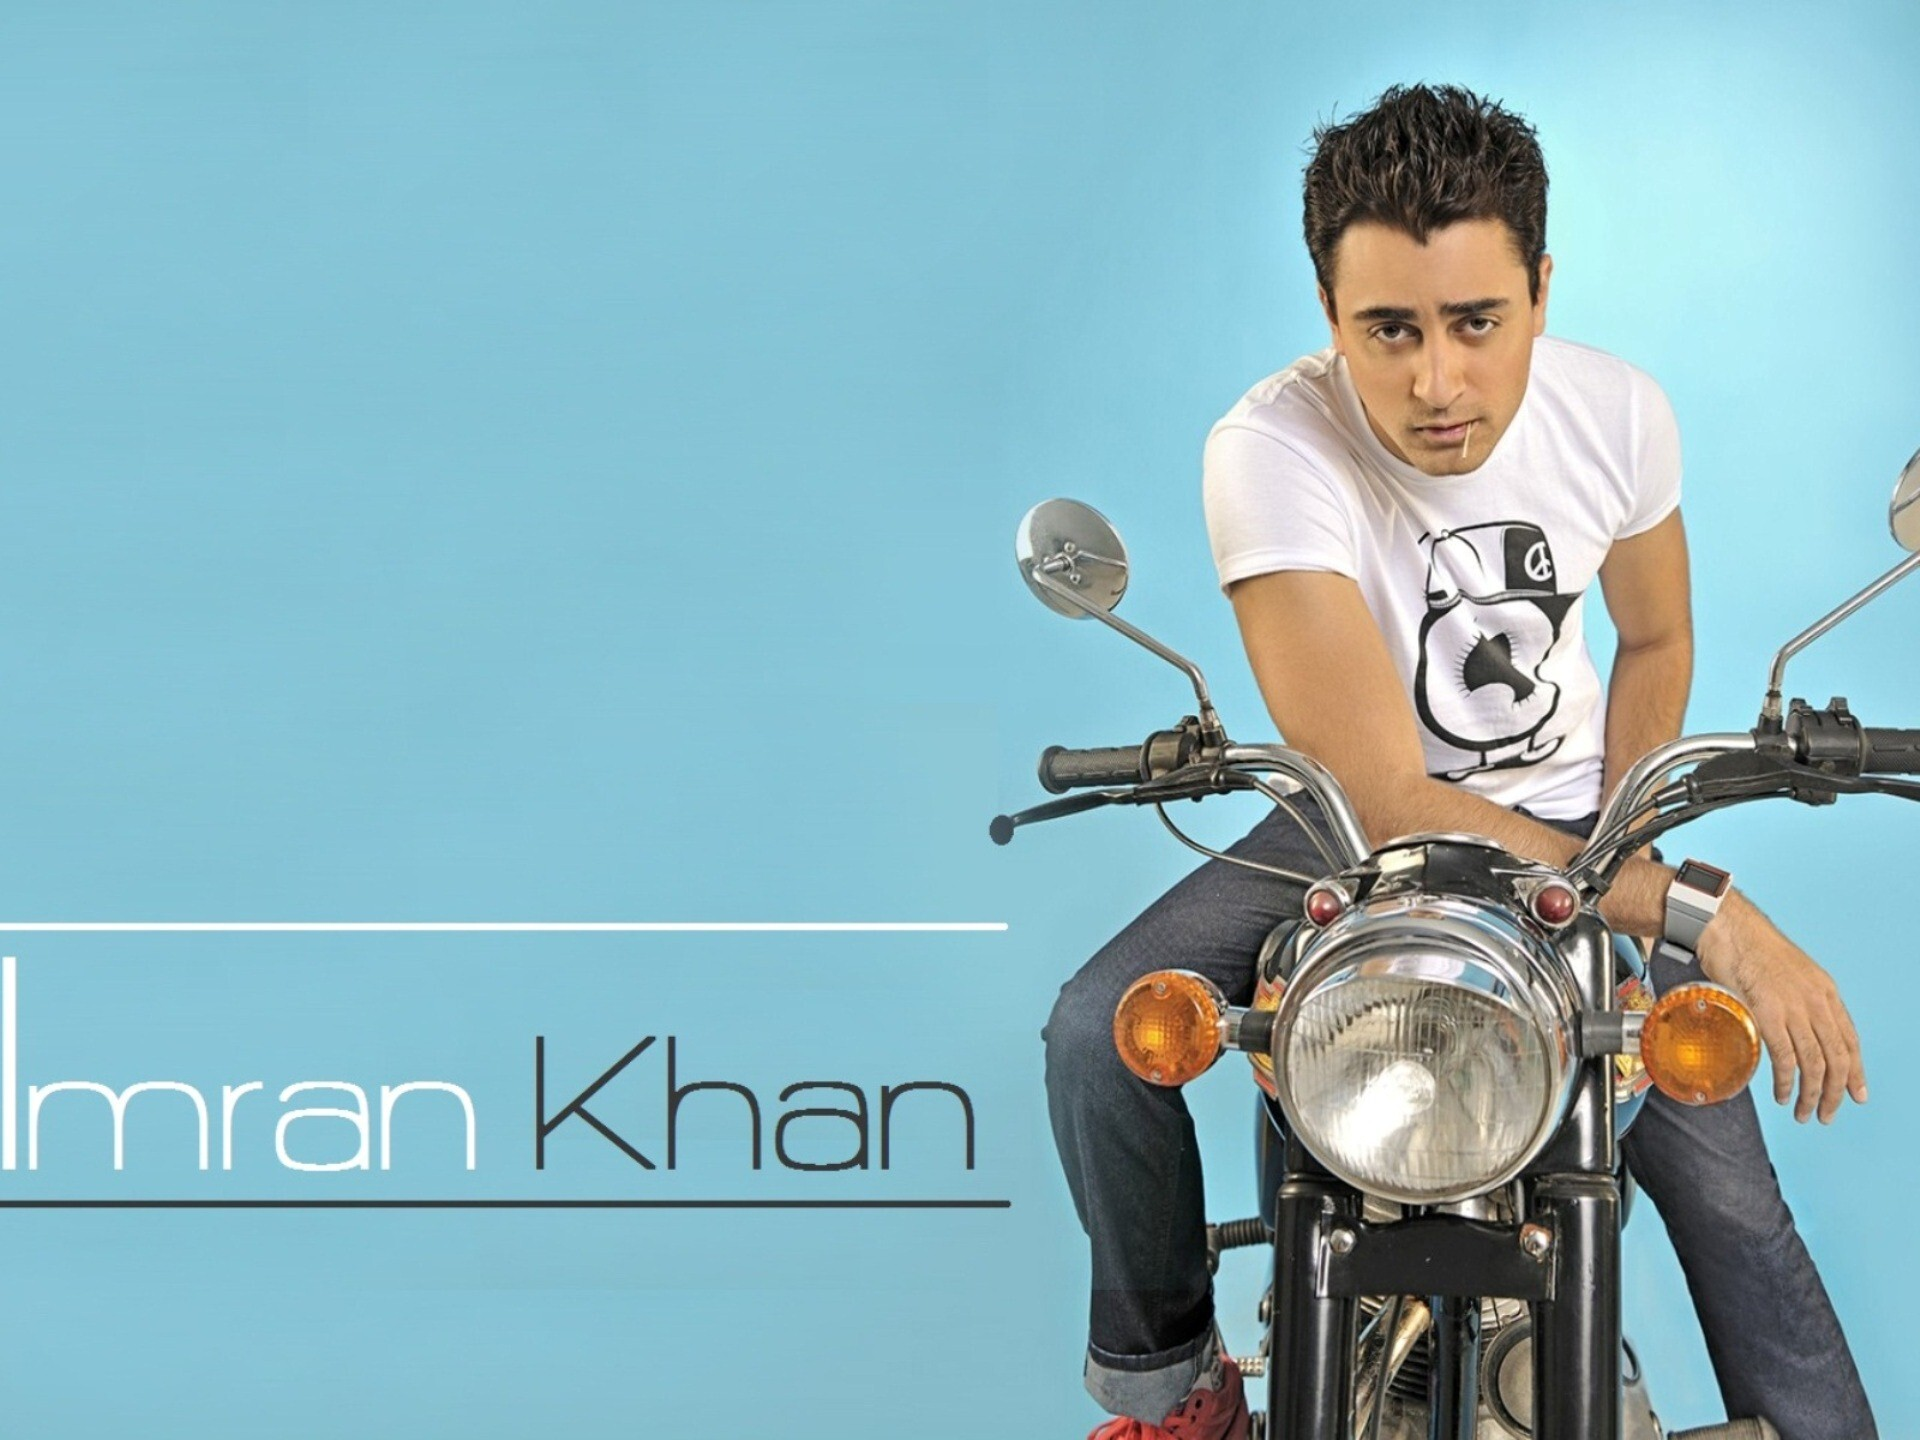 bollywood film actor imran khan on bike hd wallpapers | hd wallpapers